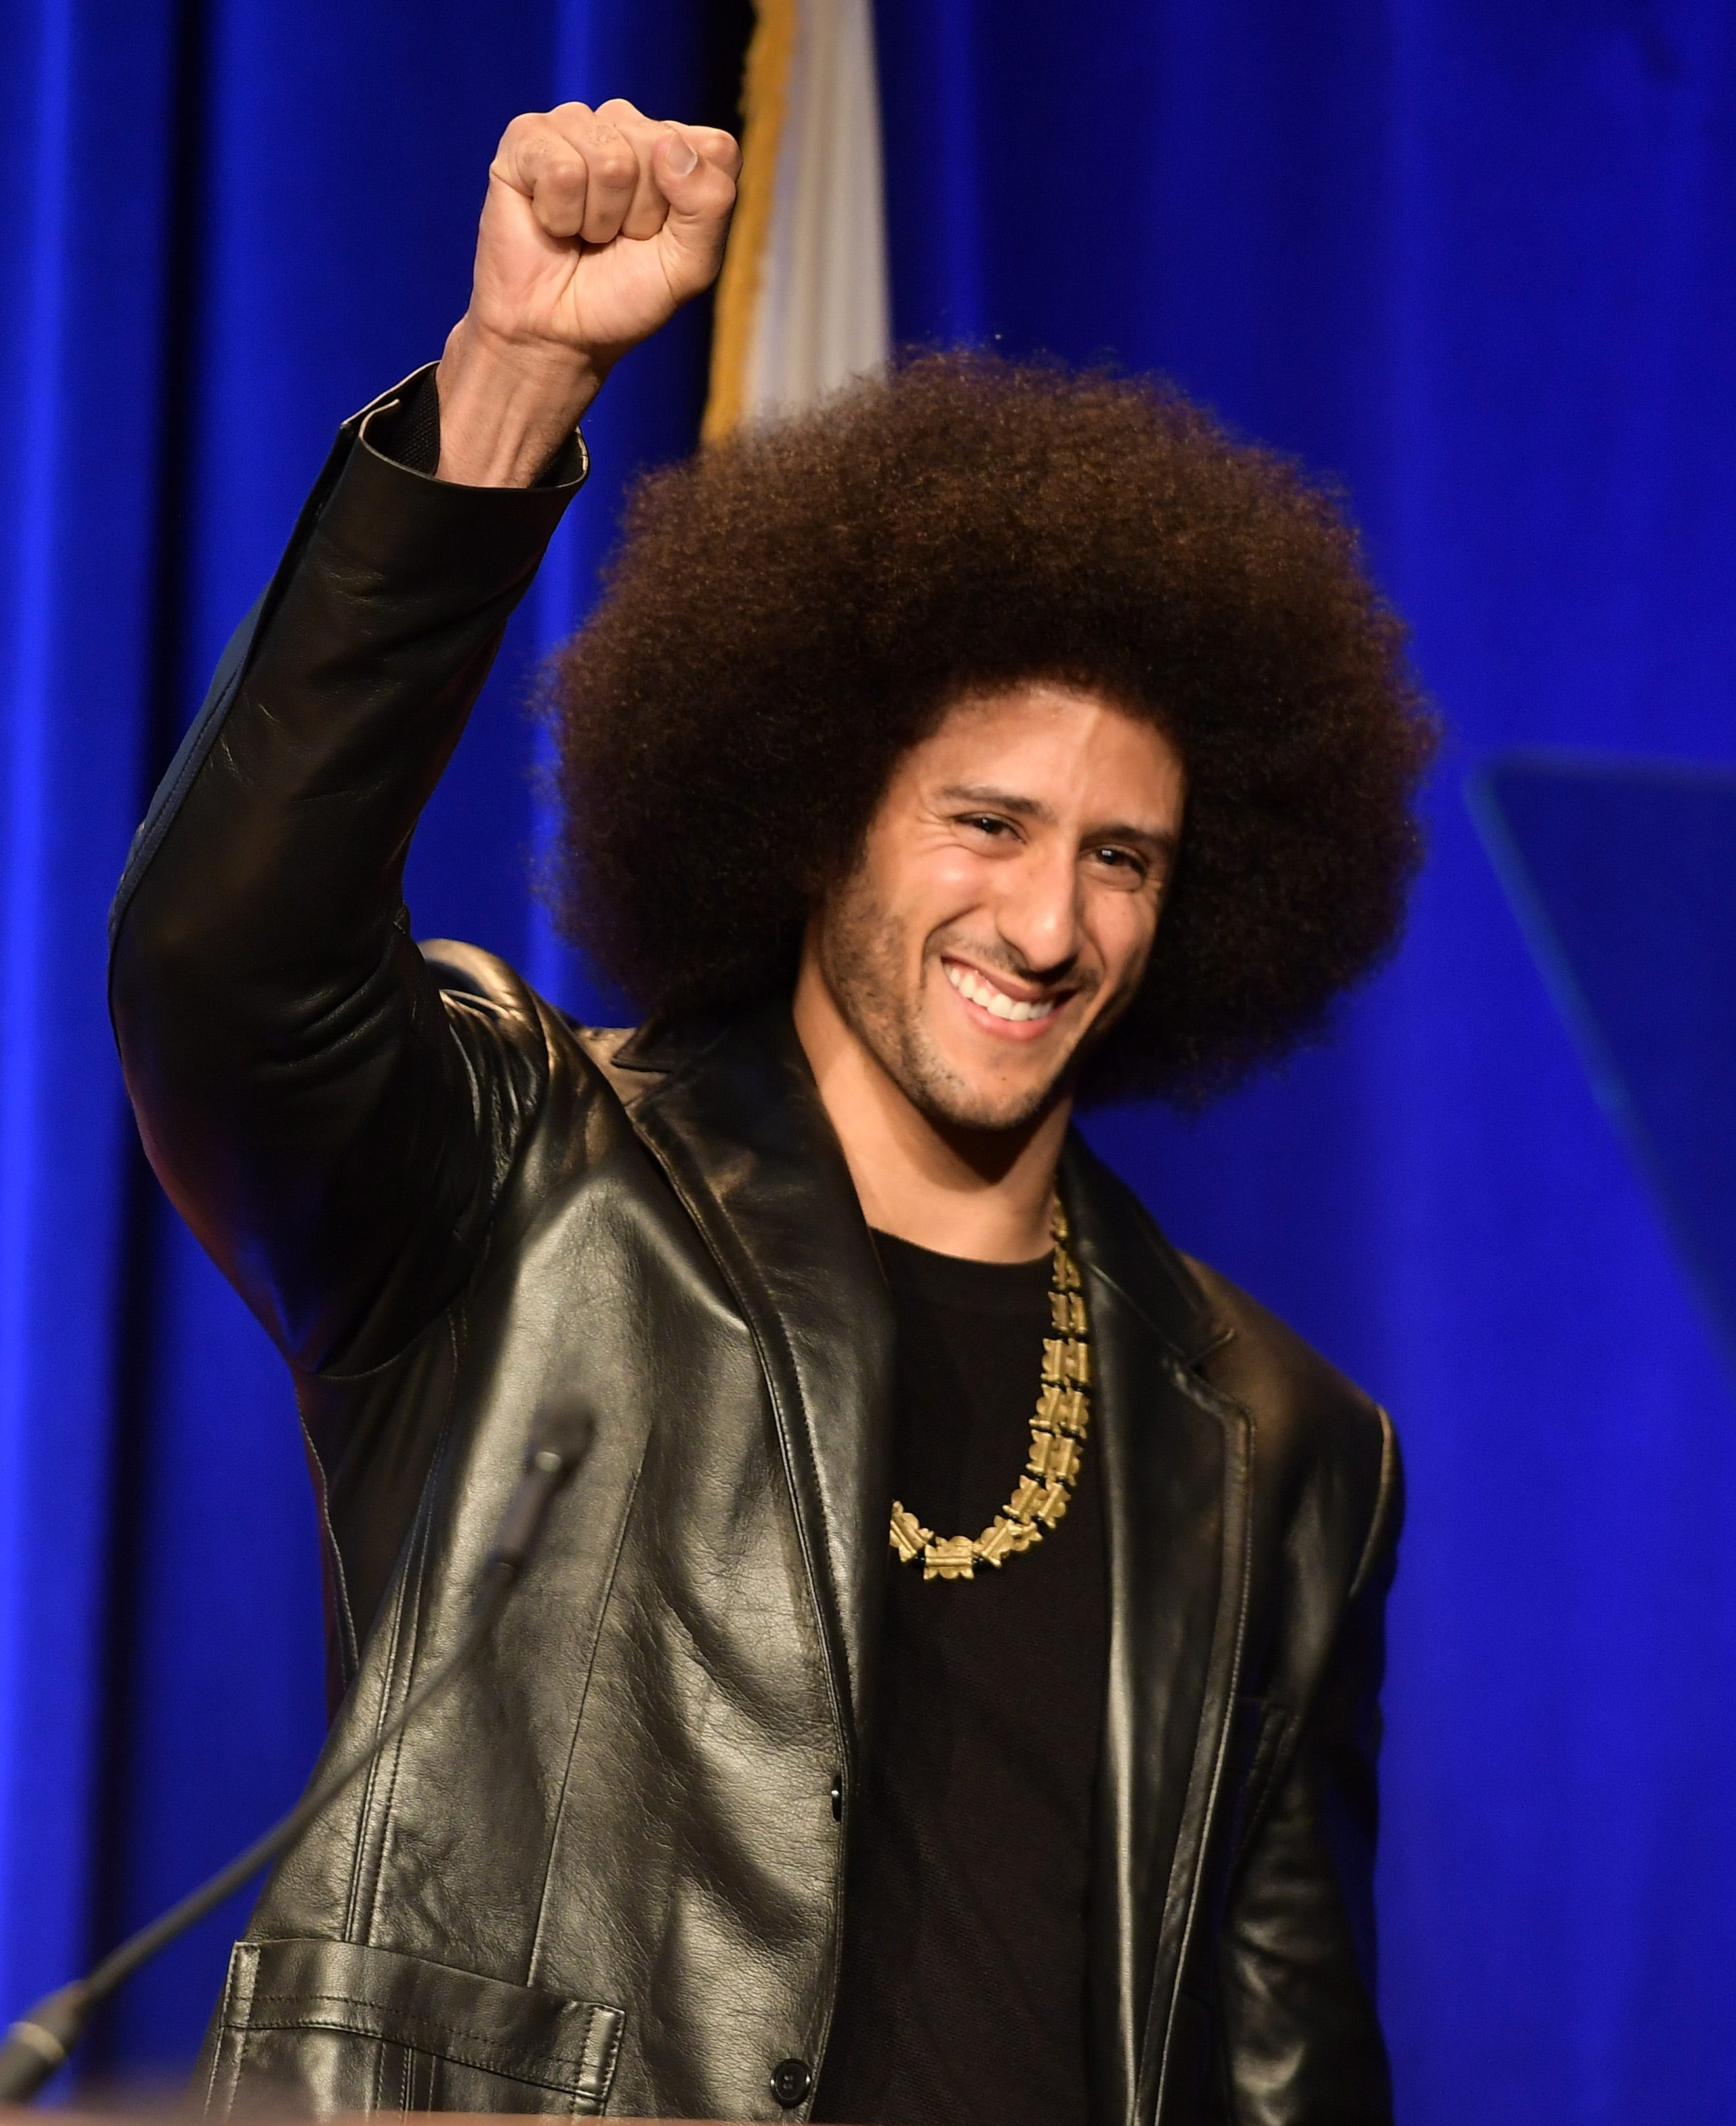 Colin Kaepernick's attorneys targeting Donald Trump for possible subpoena in NFL collusion case